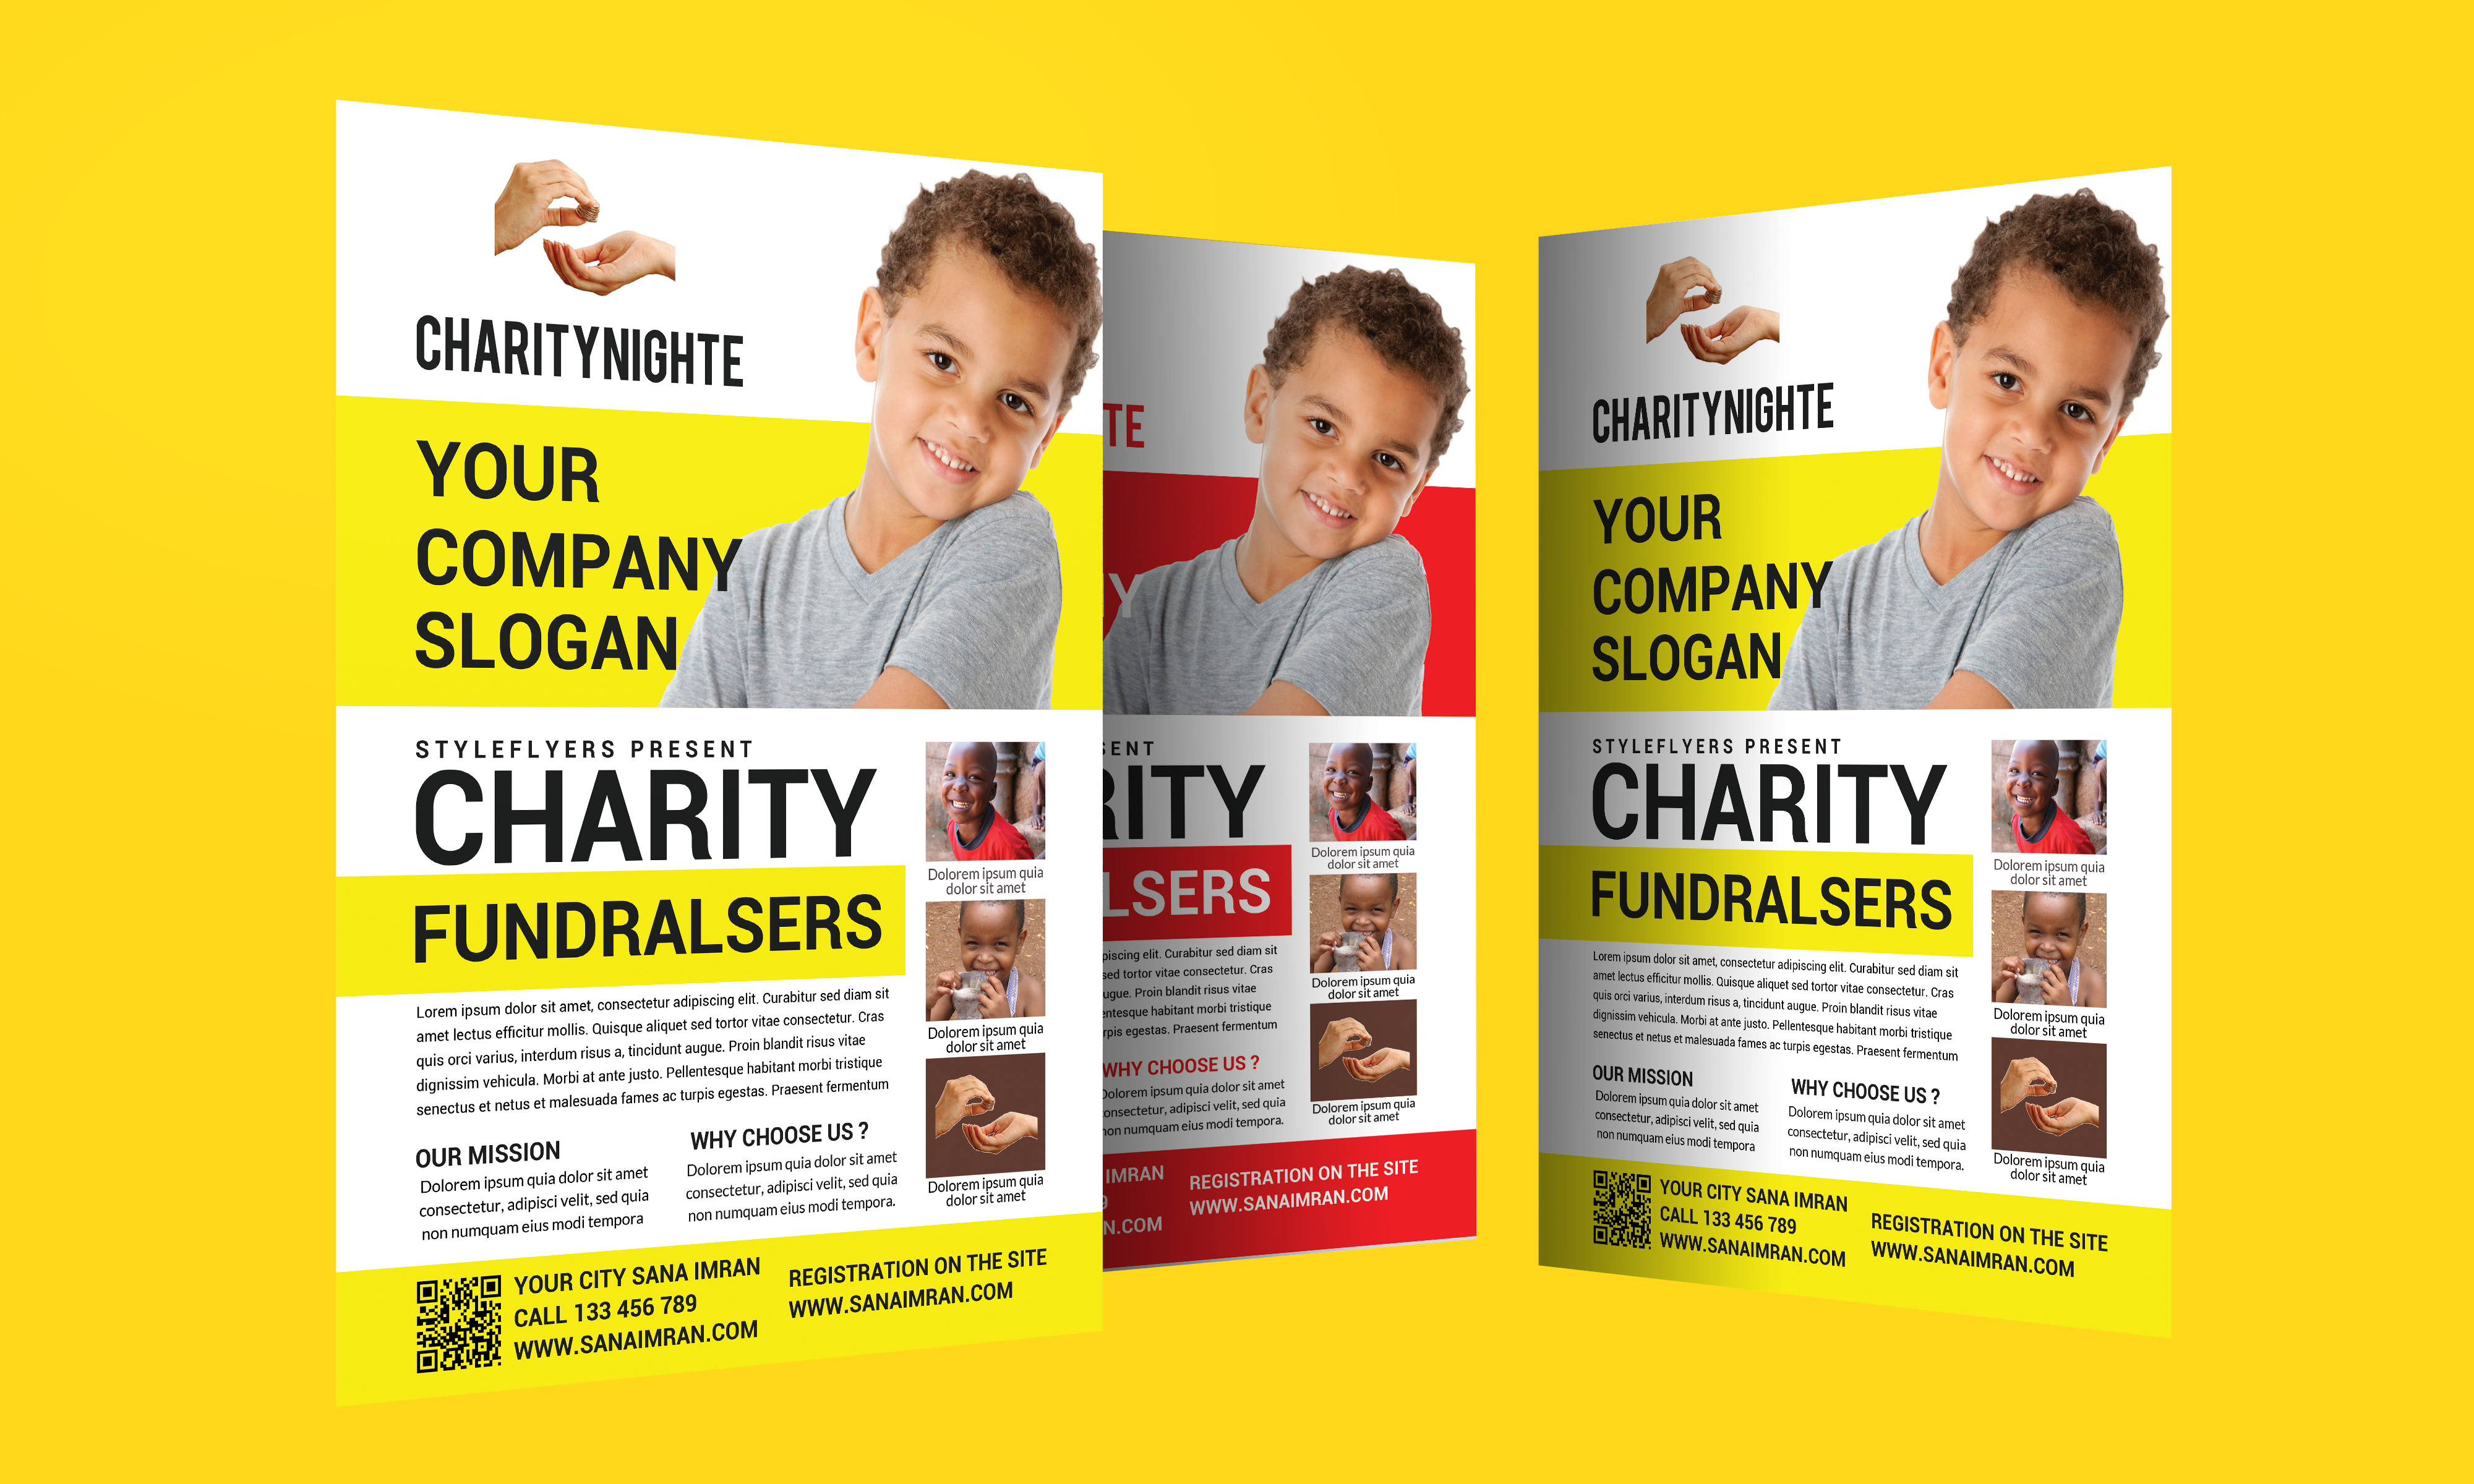 Charity Night Fundraisers Flyer example image 4